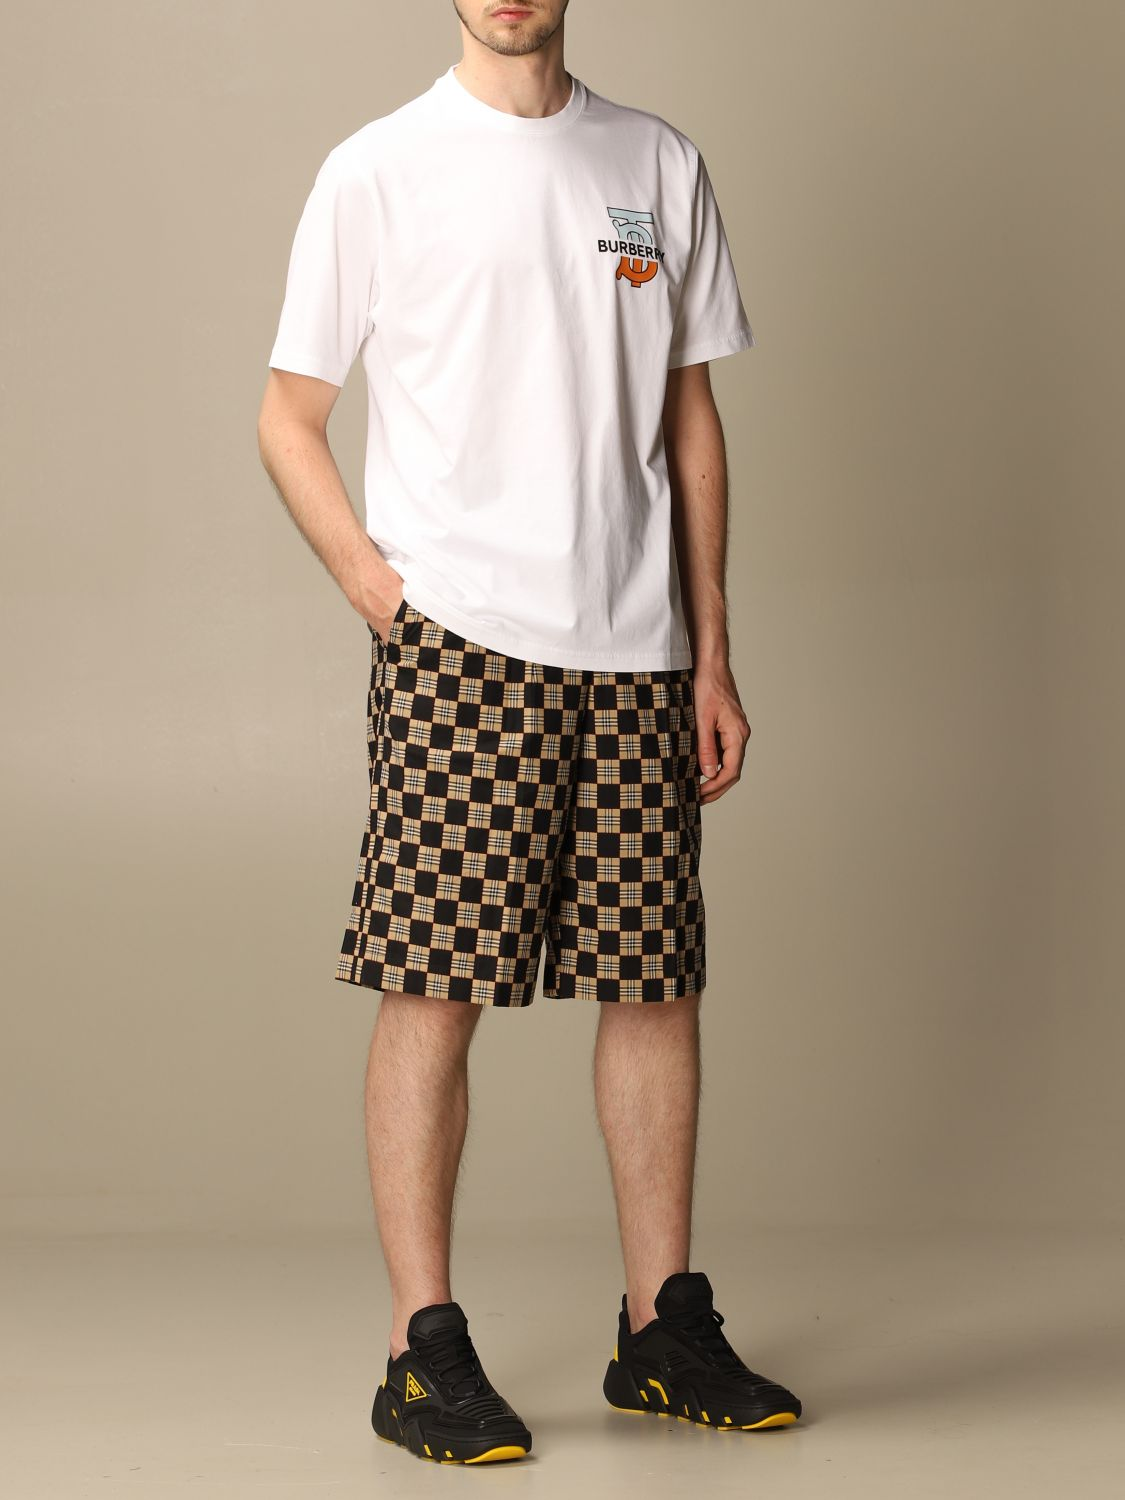 T-shirt Burberry: Ganther Burberry stretch cotton T-shirt with TB monogram white 2